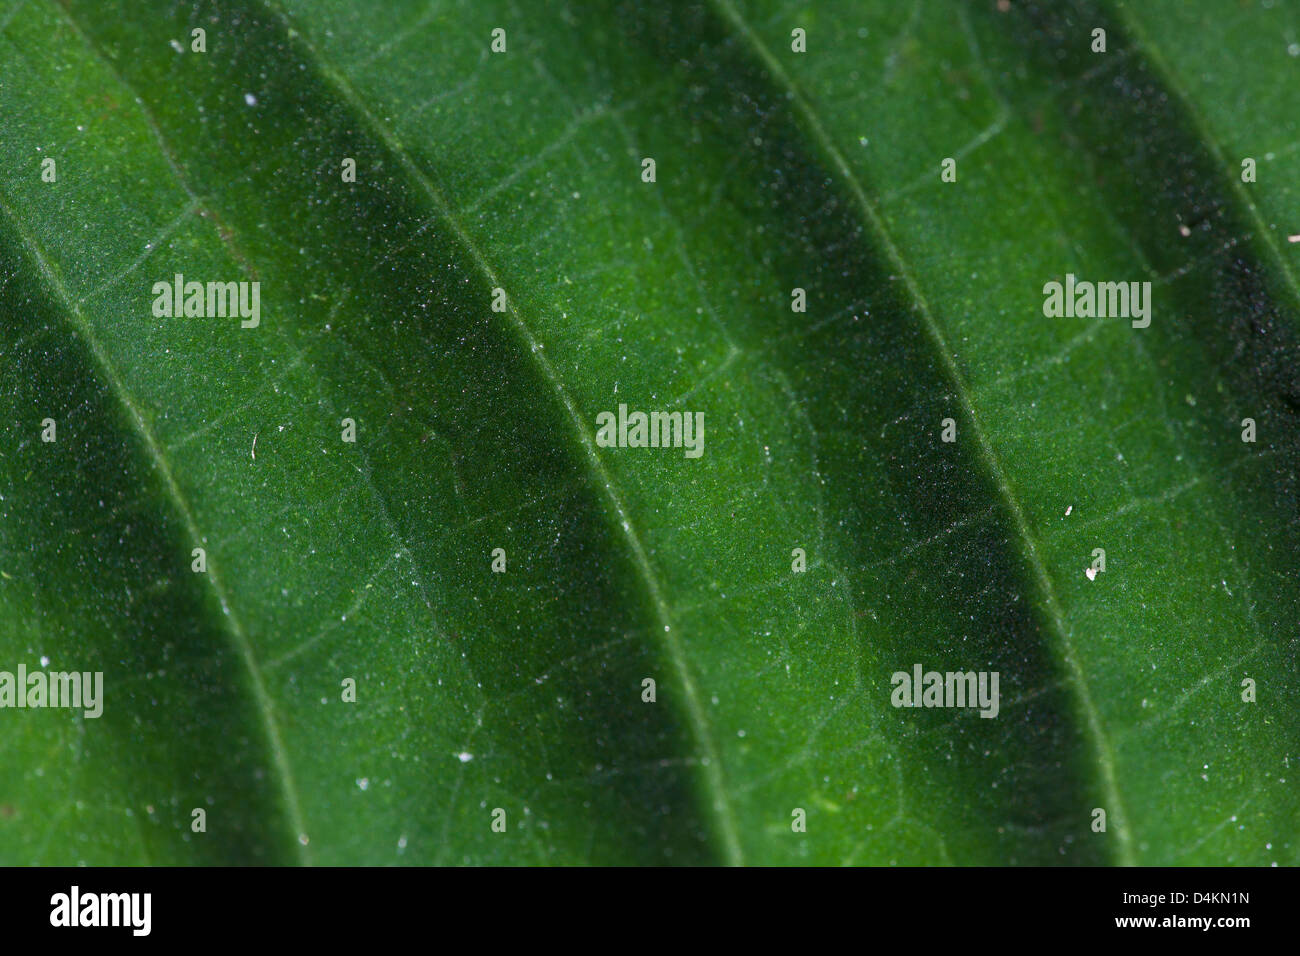 Leaf structures in La Amistad national park, Panama province, Republic of Panama. - Stock Image